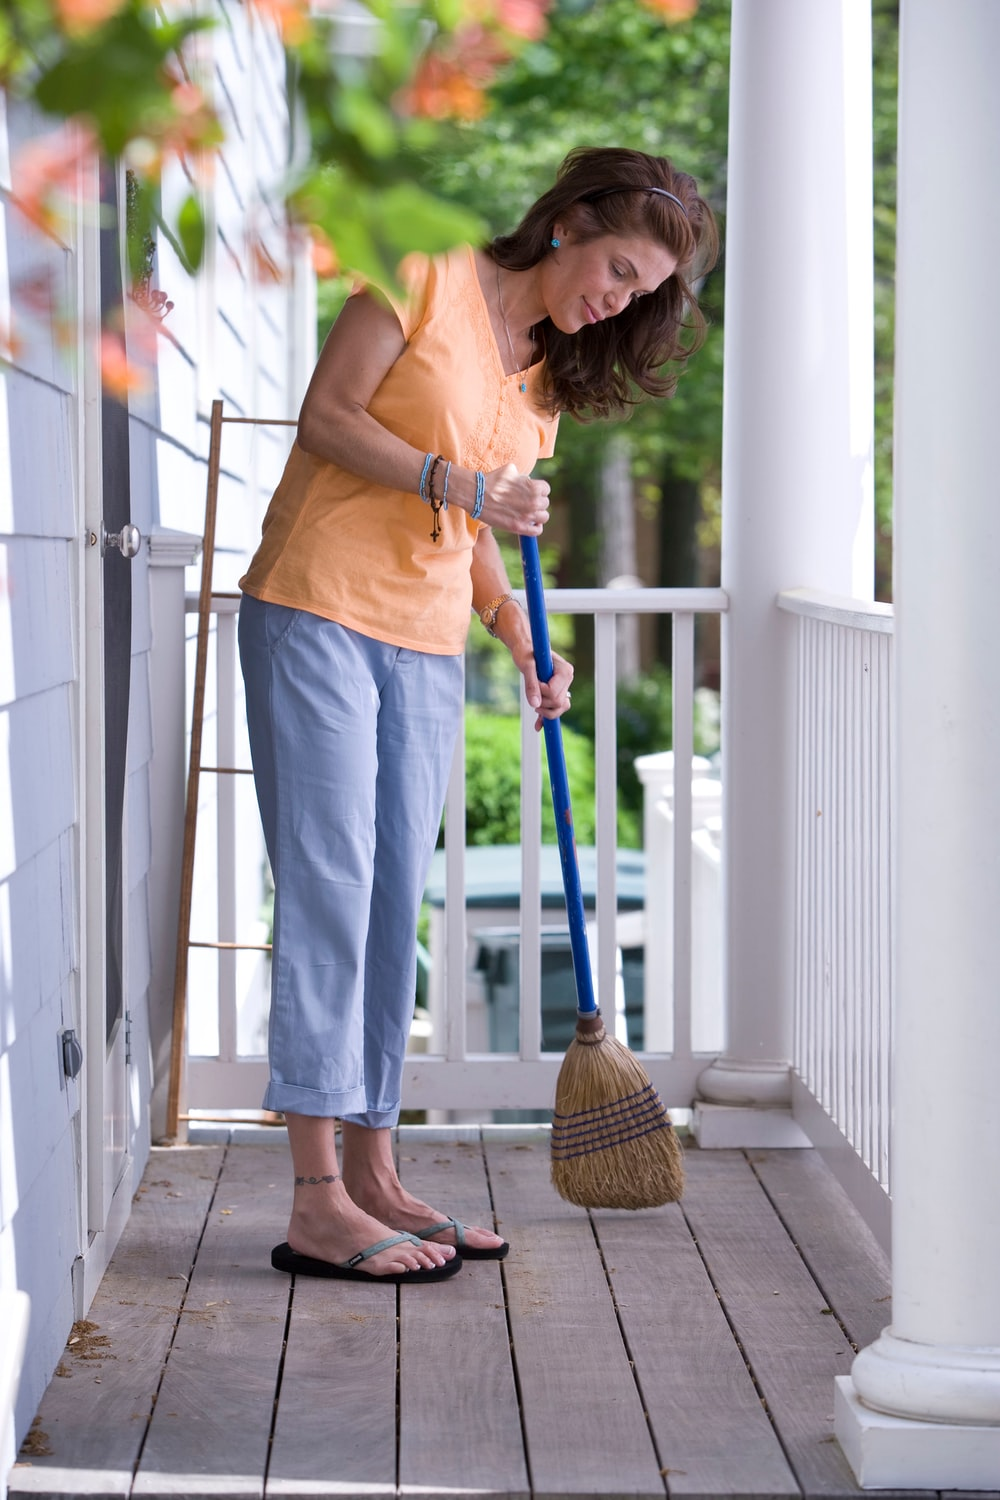 Woman in orange shirt and a broom sweeping a front porch